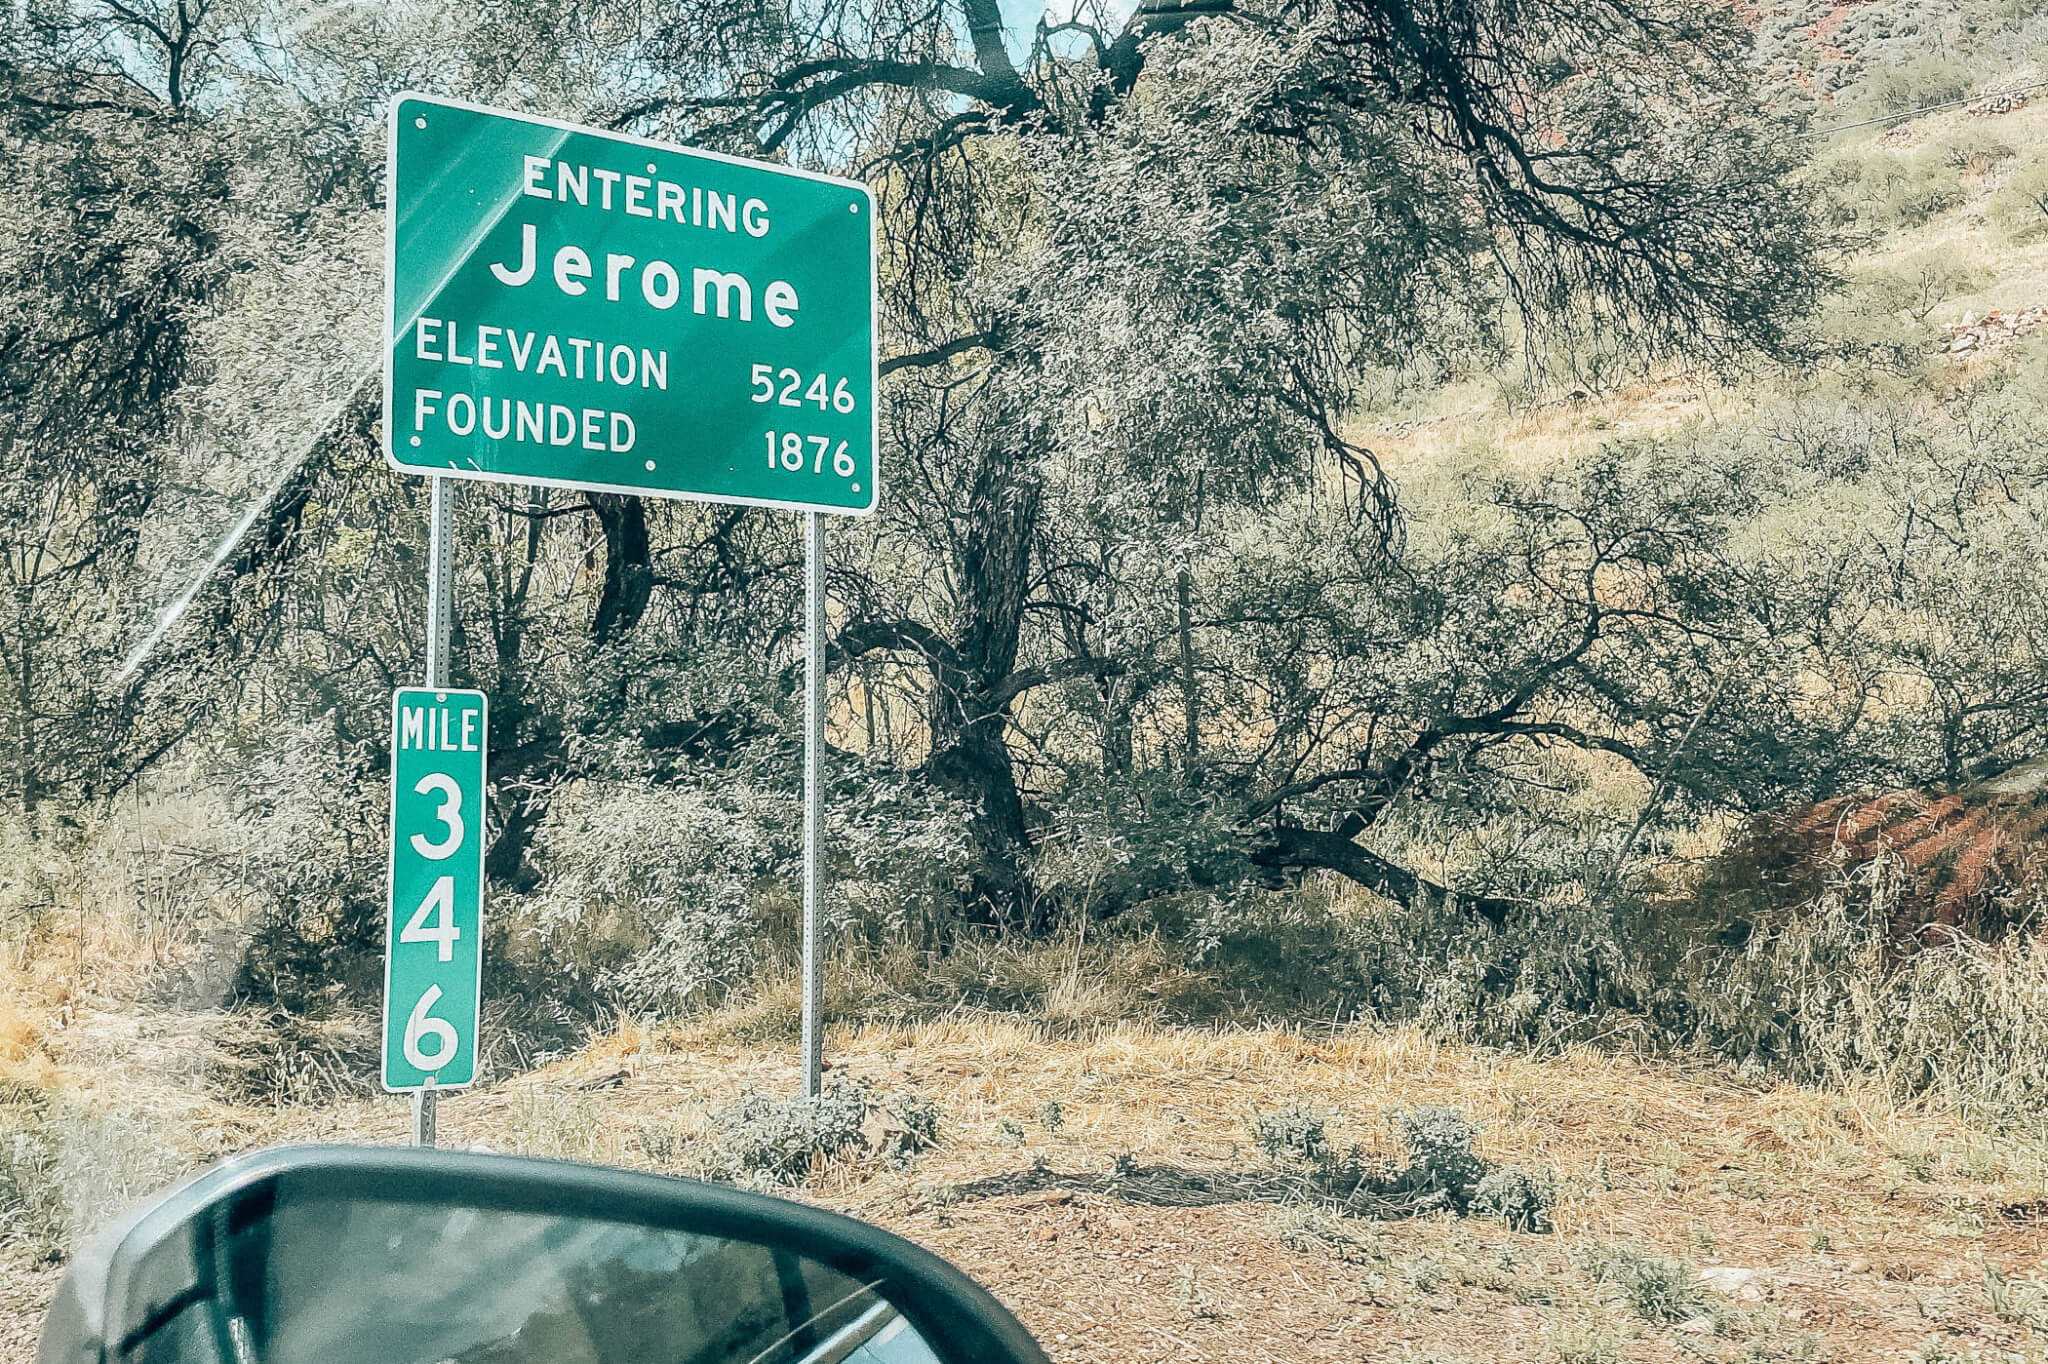 Jerome Ghost Town: 9 Things to Do in Jerome